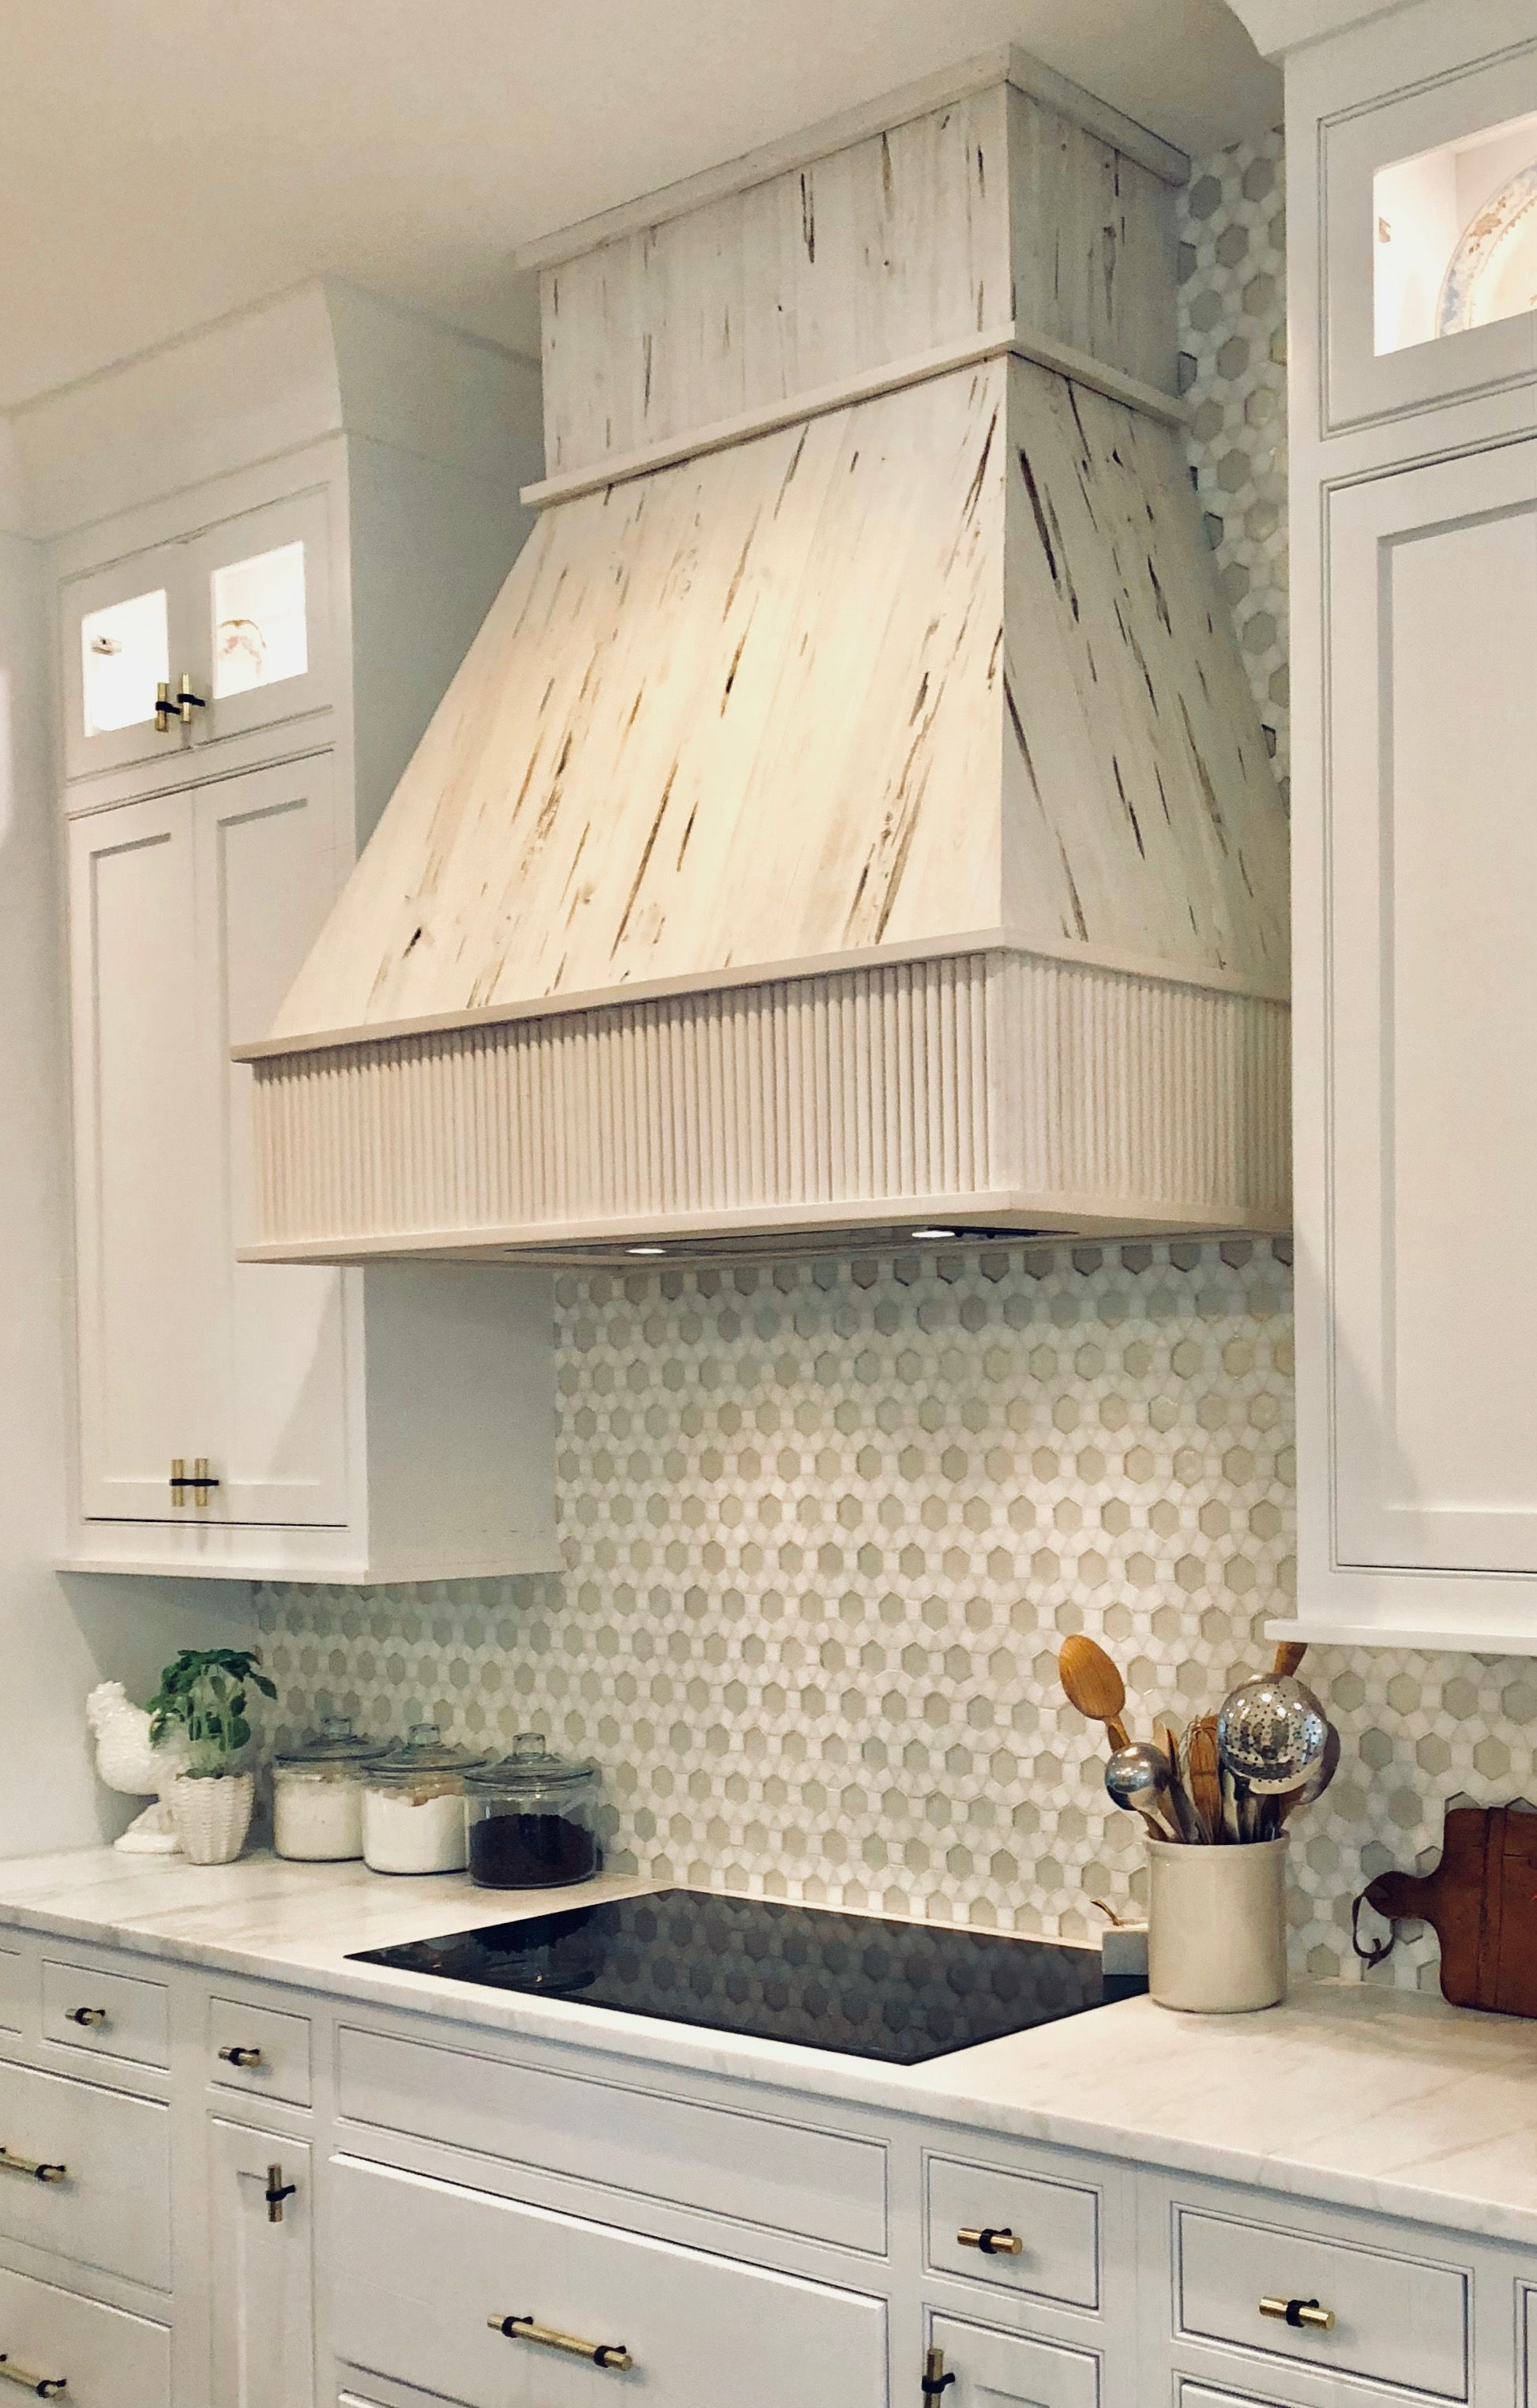 Cindy Mccarley Designs Custom Hood Made From Pecky Cypress Home Decor Home Kitchen Cabinets